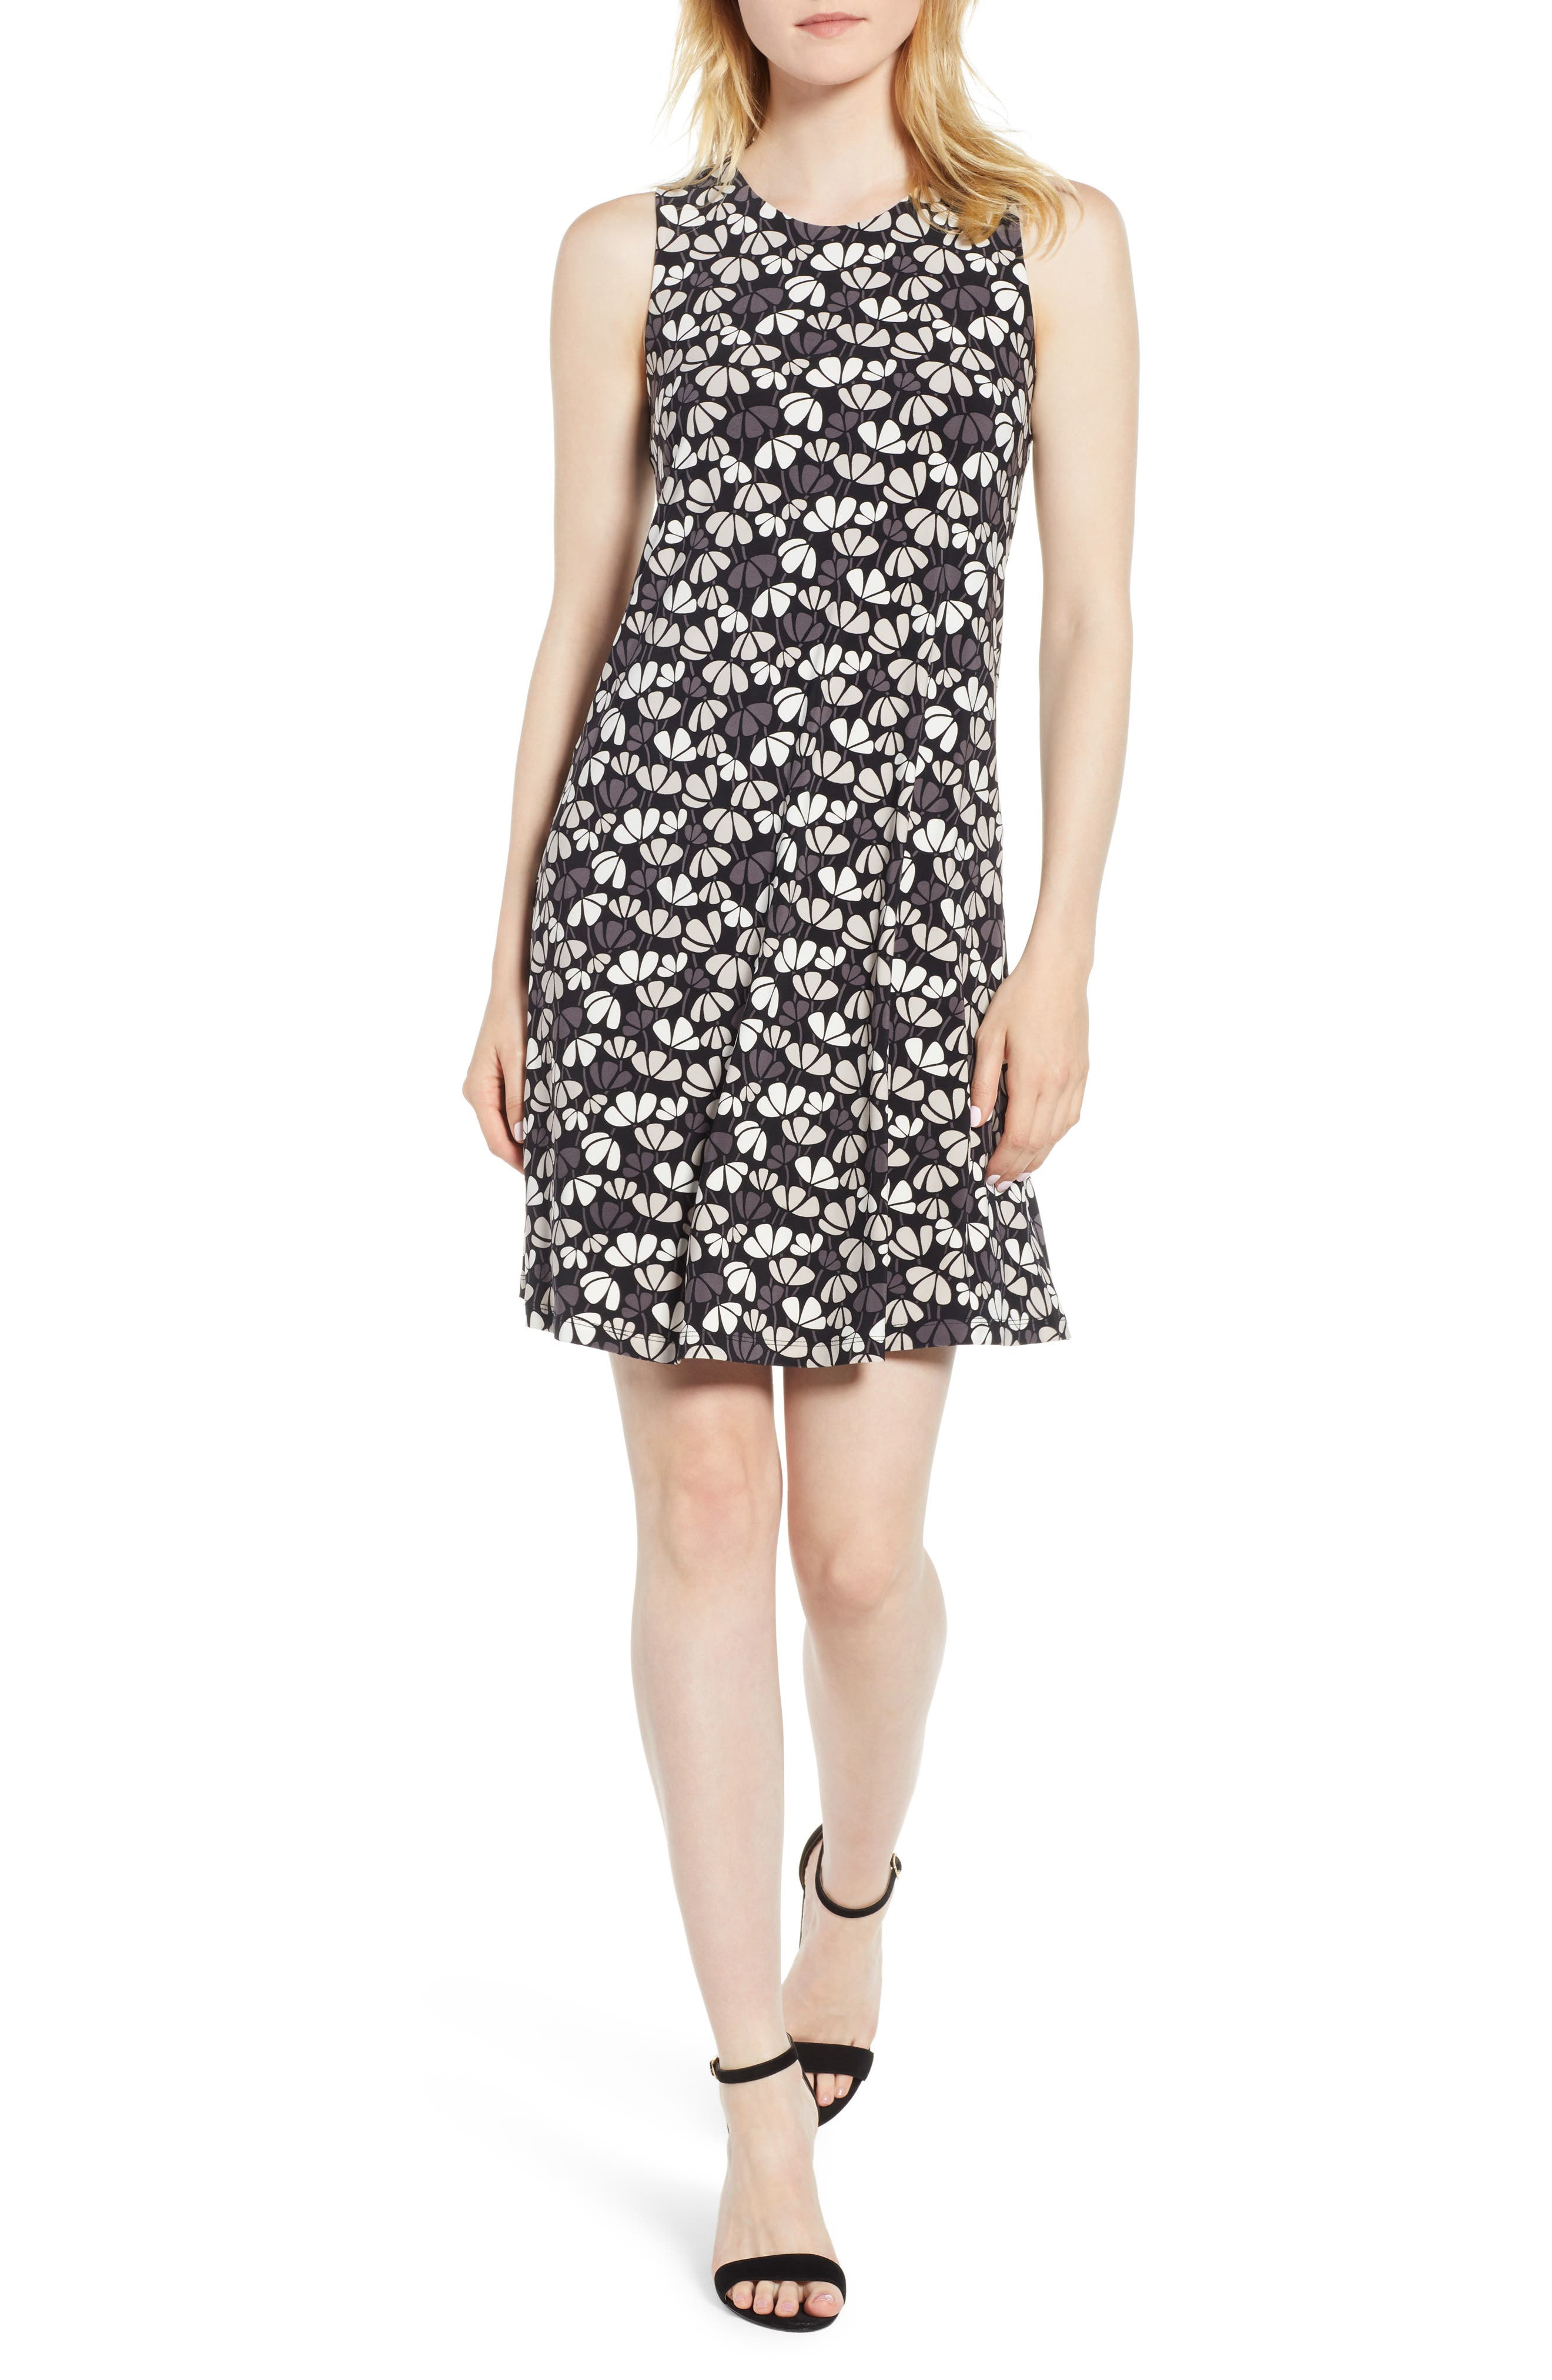 Flowerfall Stretch Knit Swing Dress,                         Main,                         color, Black/ Oyster Shell Combo